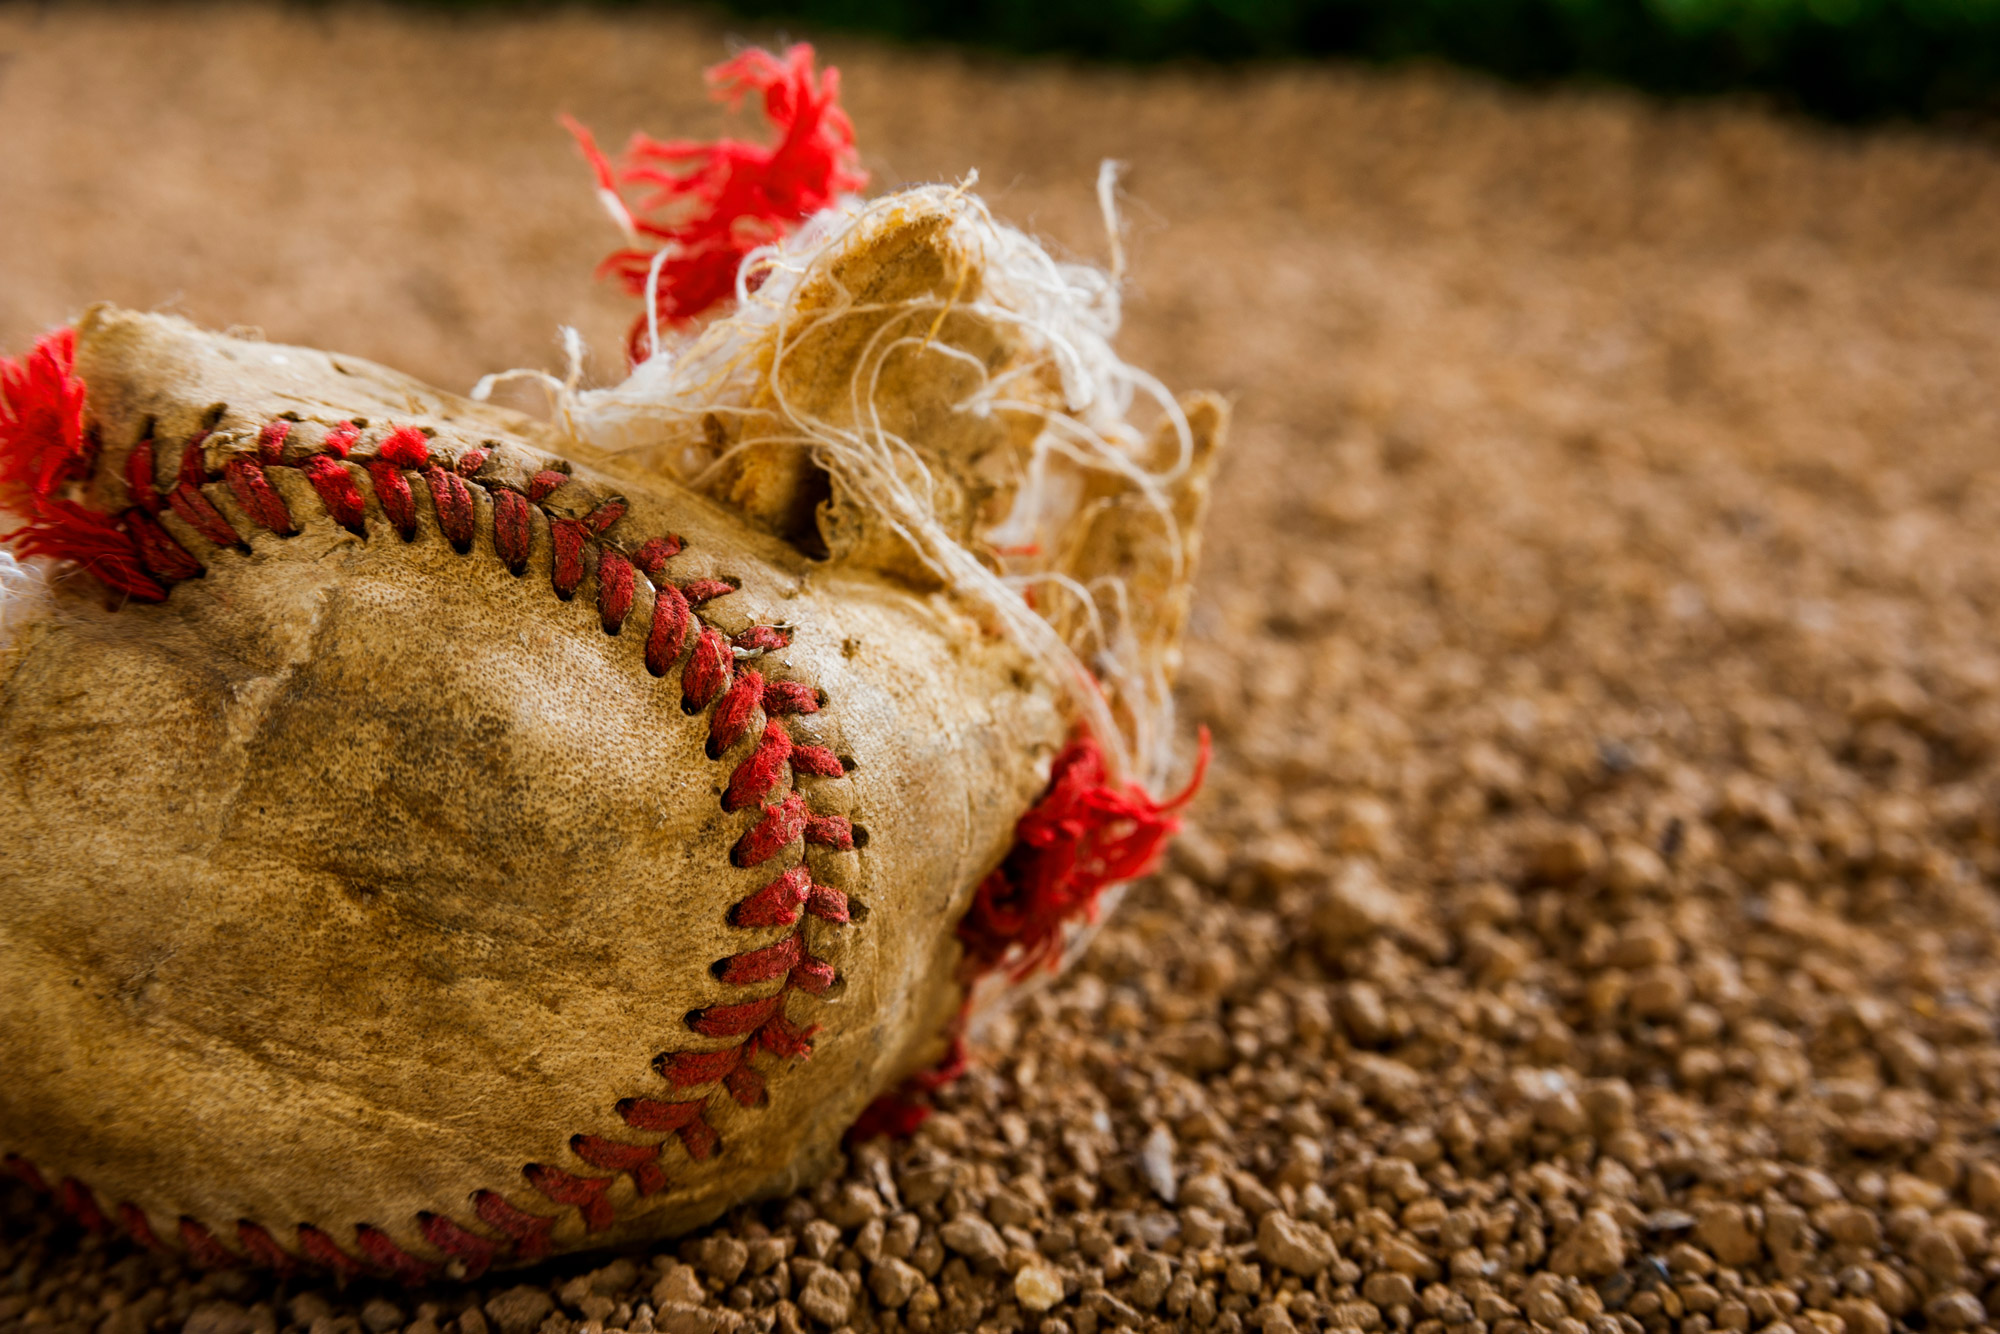 A destroyed baseball lays on the ground